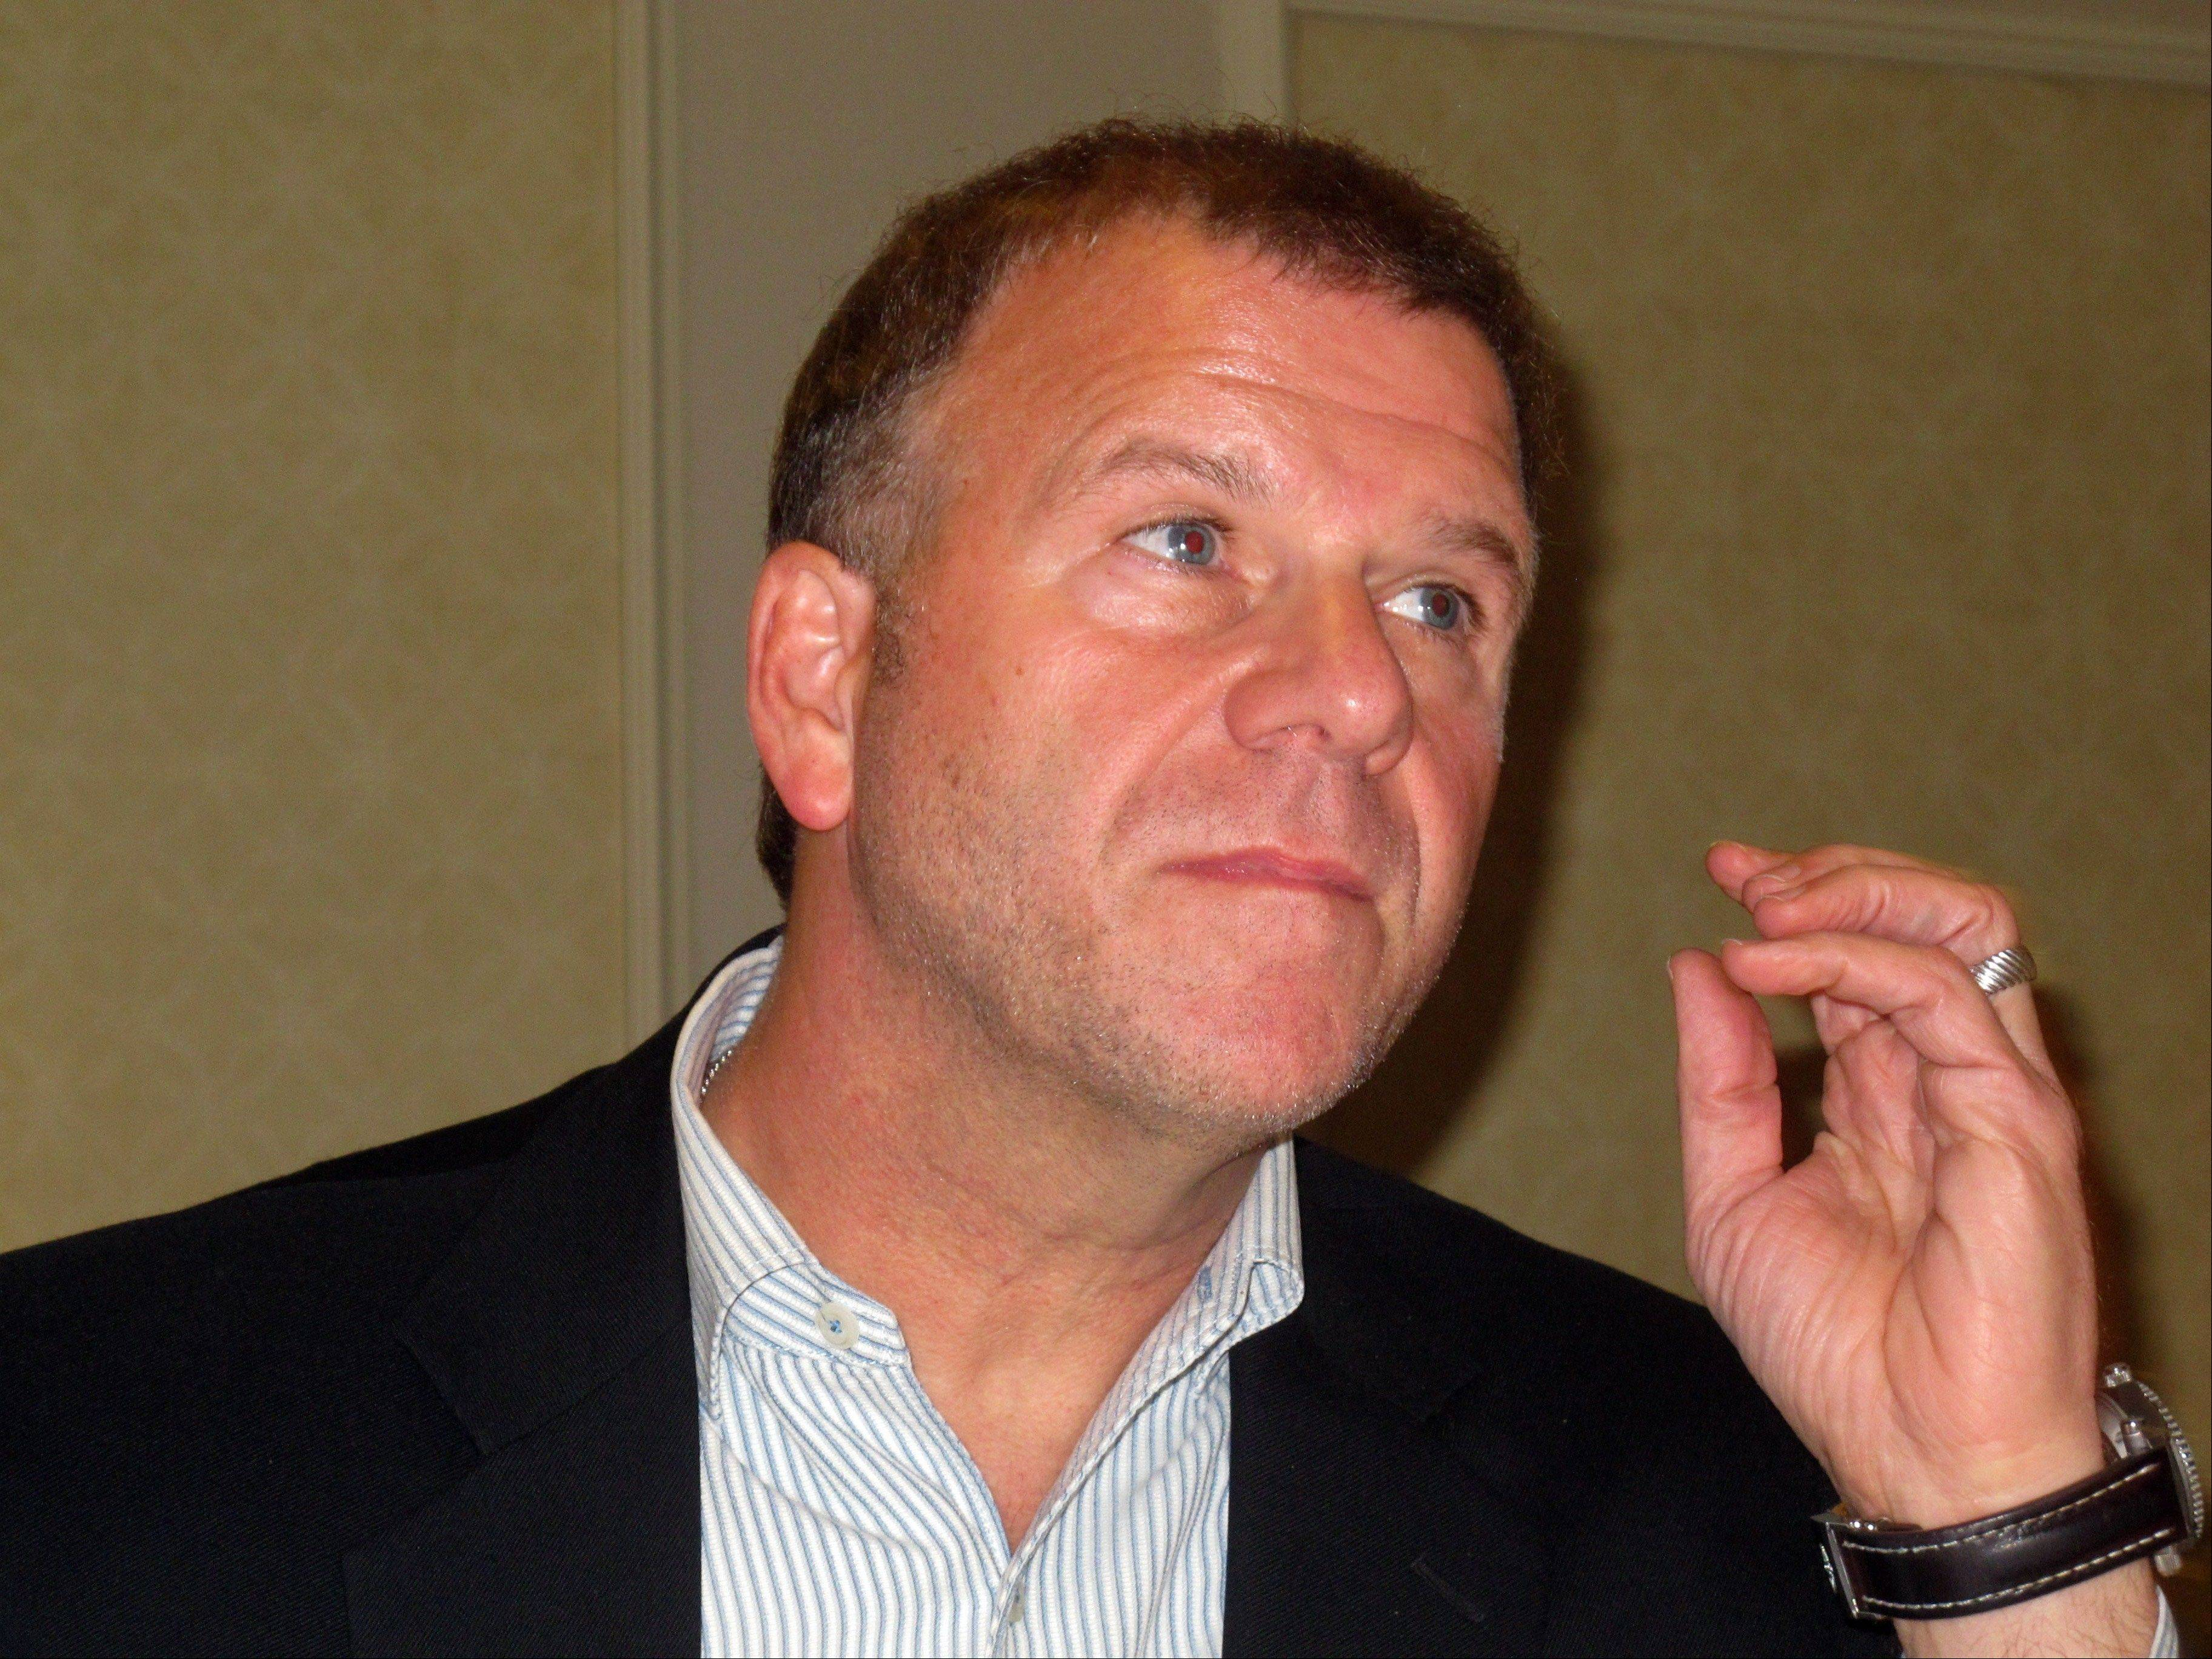 Tilman Fertitta, owner of the Golden Nugget Atlantic City, announces at a news conference Friday at his Atlantic City, N.J., casino, that the casino will let gamblers cash in nearly $1 million worth of chips they won at card games in which the cards were not shuffled.